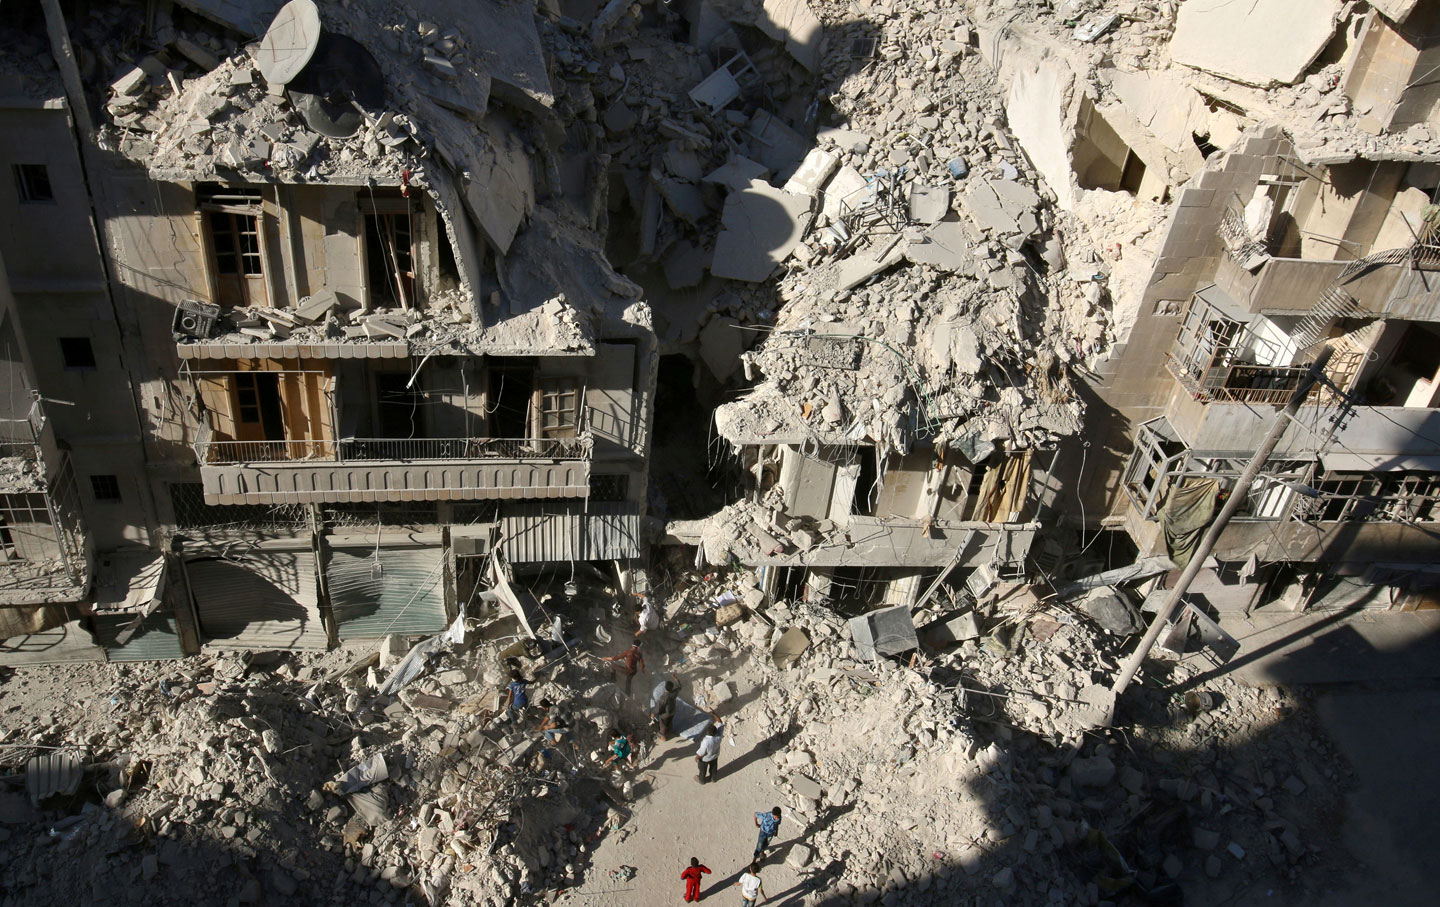 Rubble in Aleppo